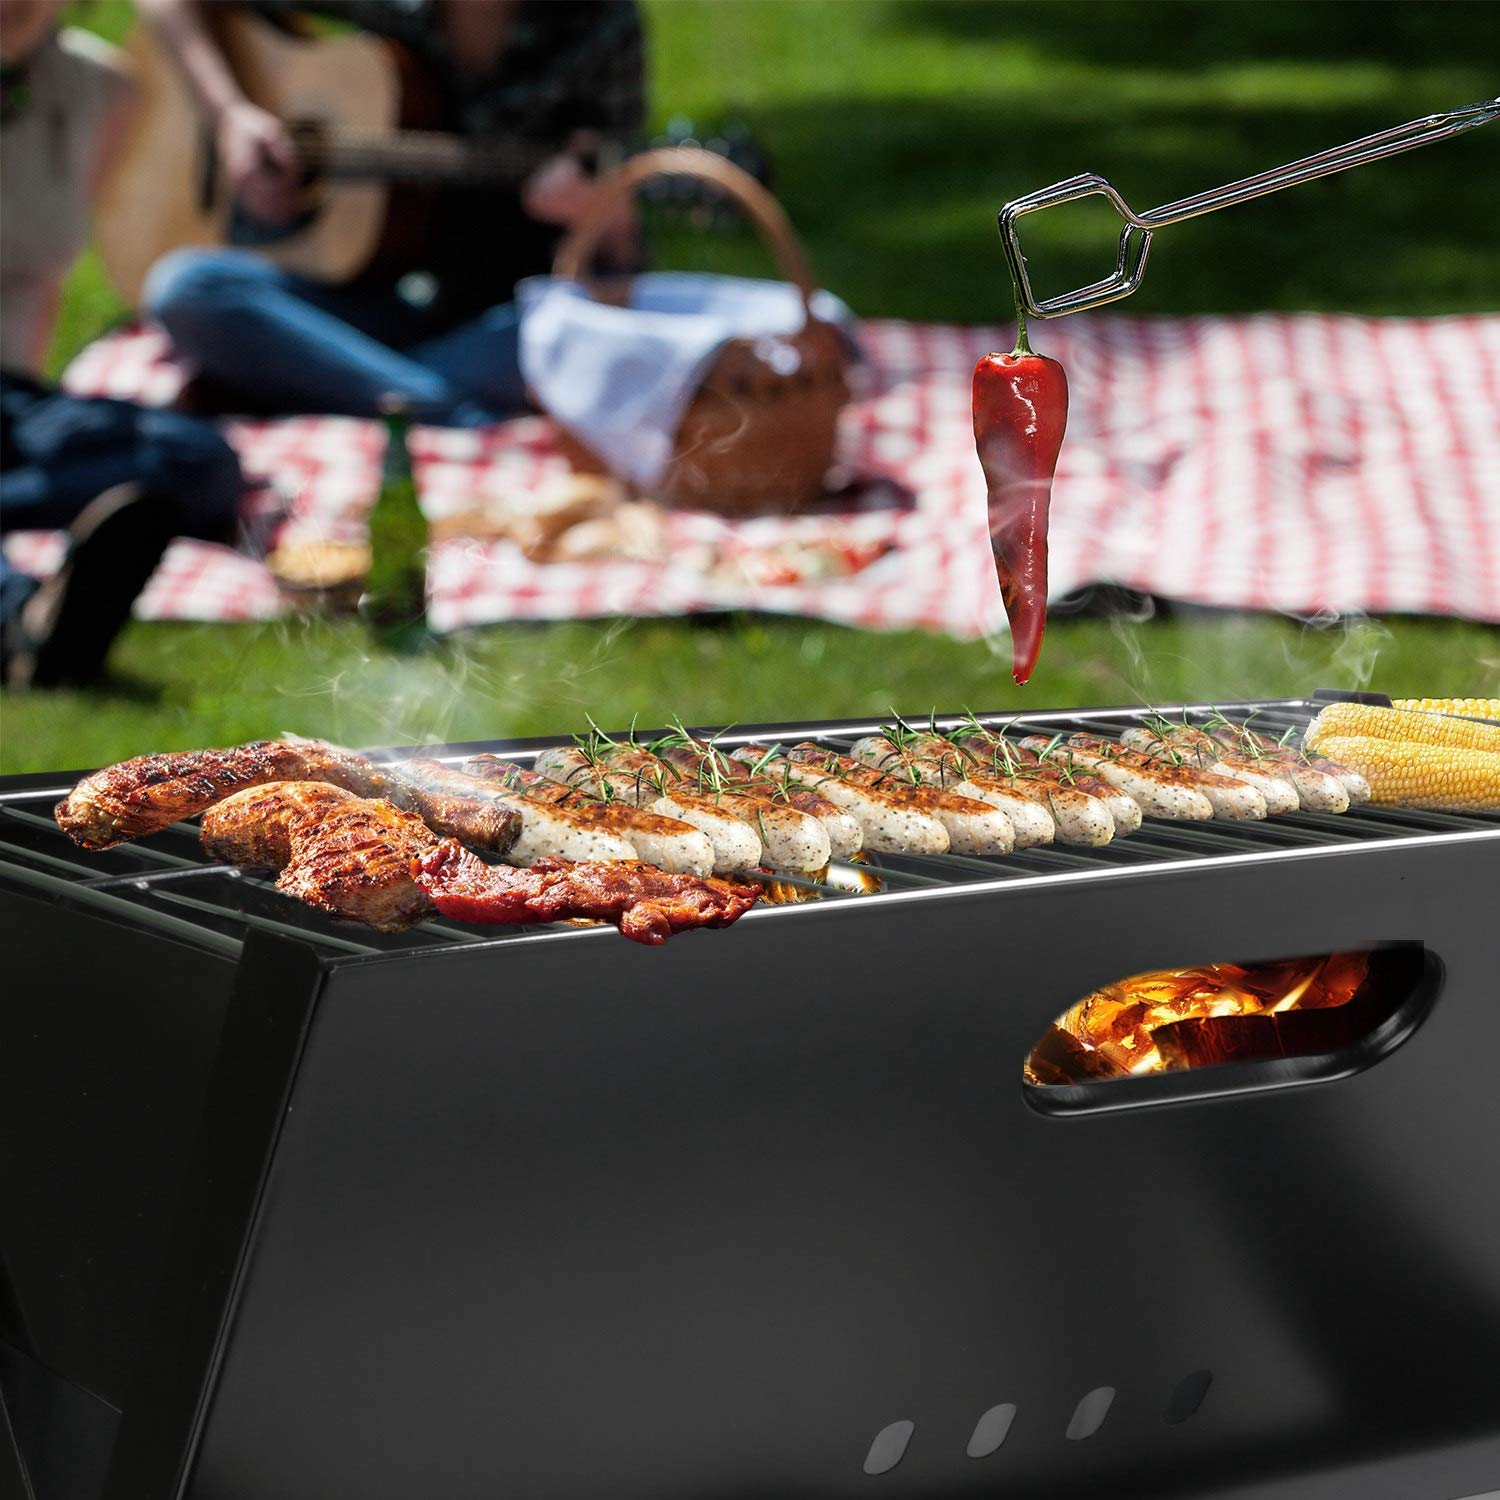 Hasika Barbecue Charcoal Grill Folding Portable Grills Lightweight Small BBQ Grills for Outdoor Picnics Camping Garden Cooking